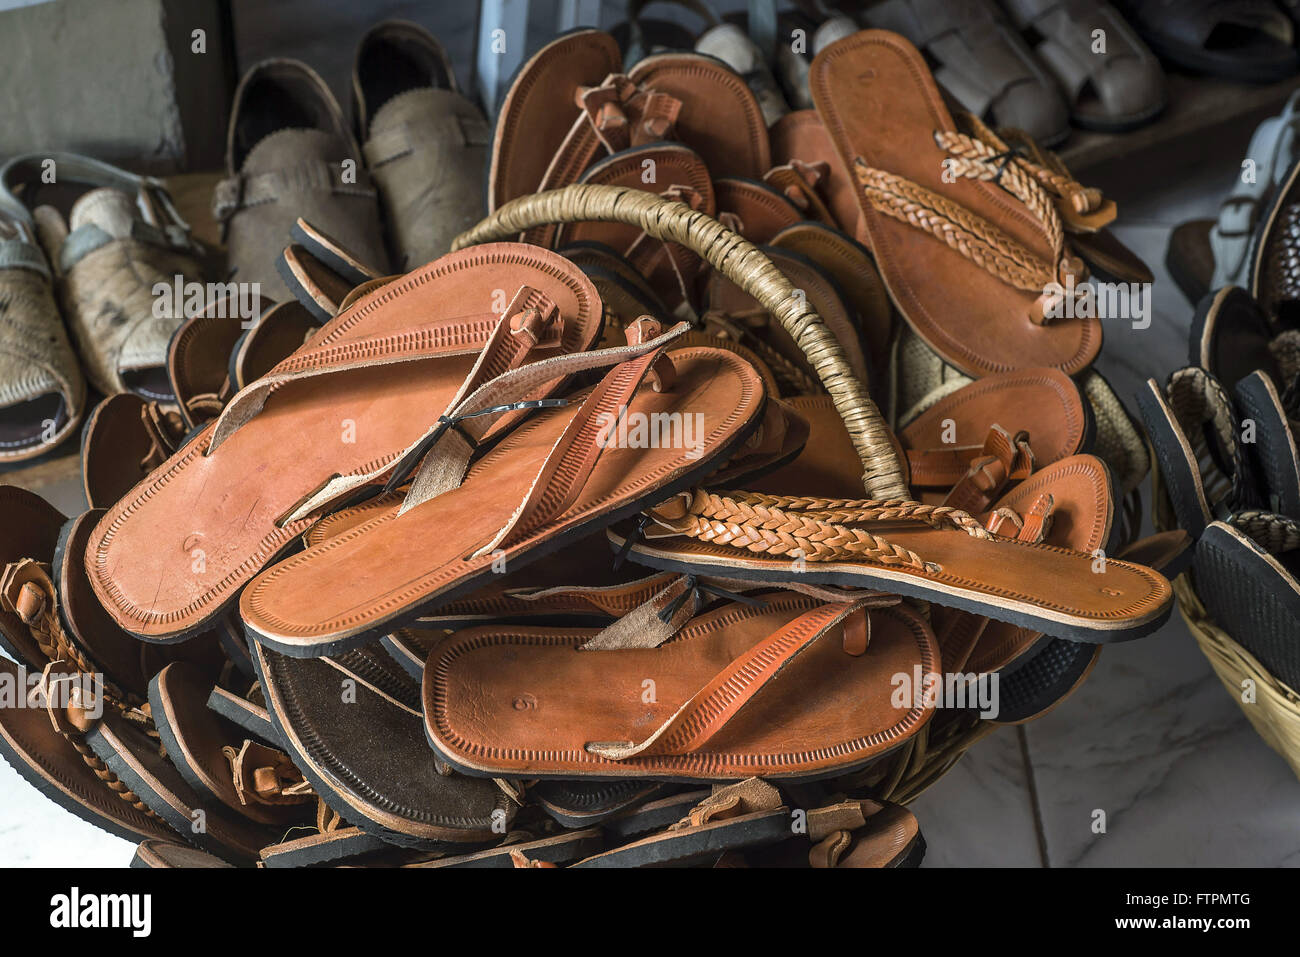 Leather sandals and slippers for sale in Feira de Caruaru - Stock Image